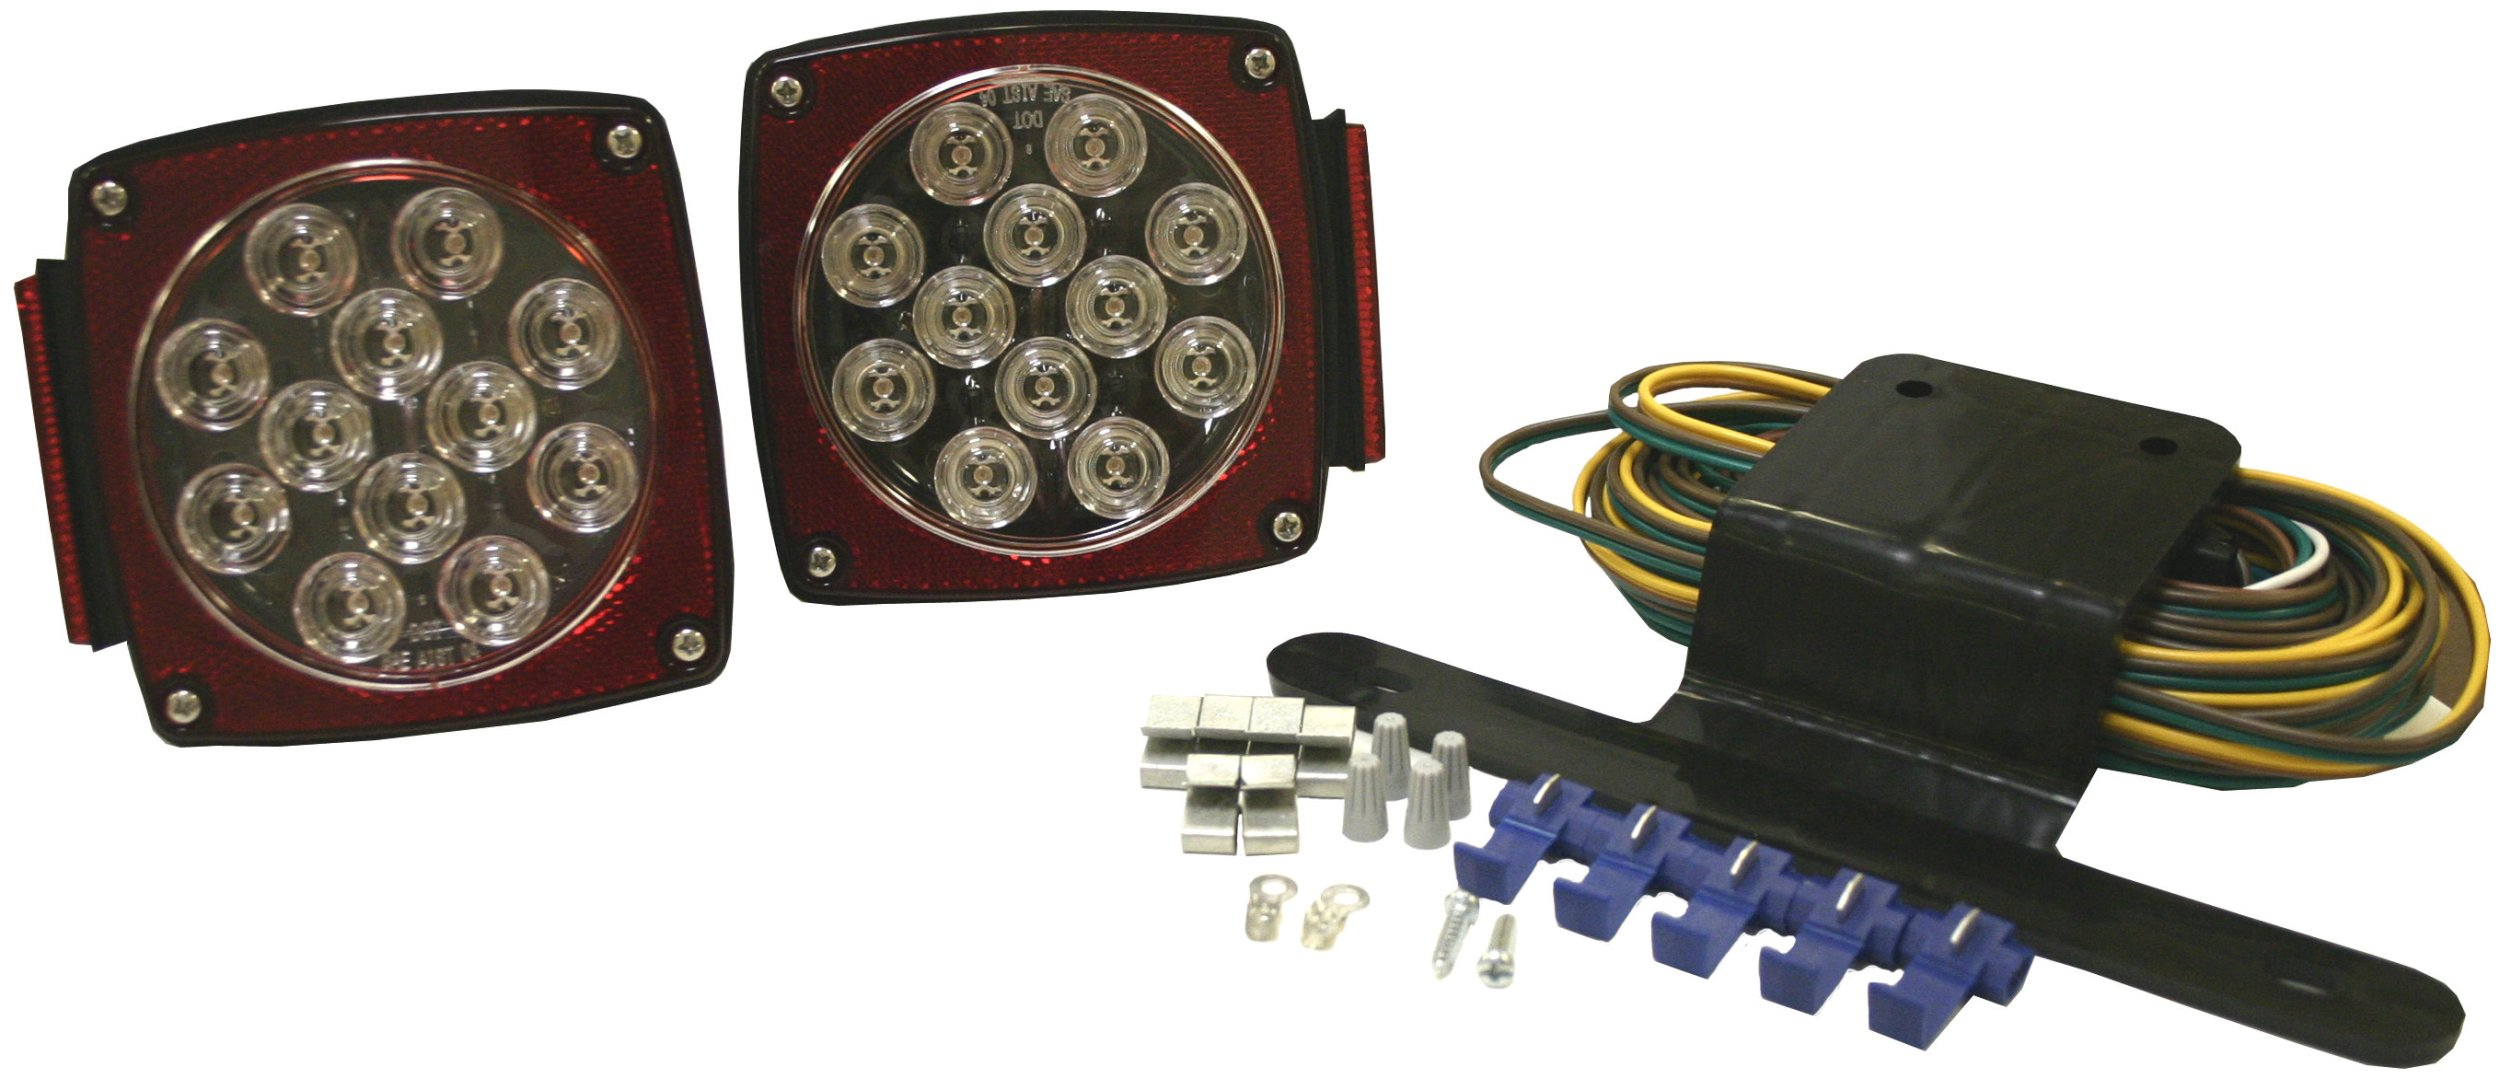 Blazer C5721 LED Submersible Trailer Light Kit, Under 80'' by Blazer International Trailer & Towing Accessories